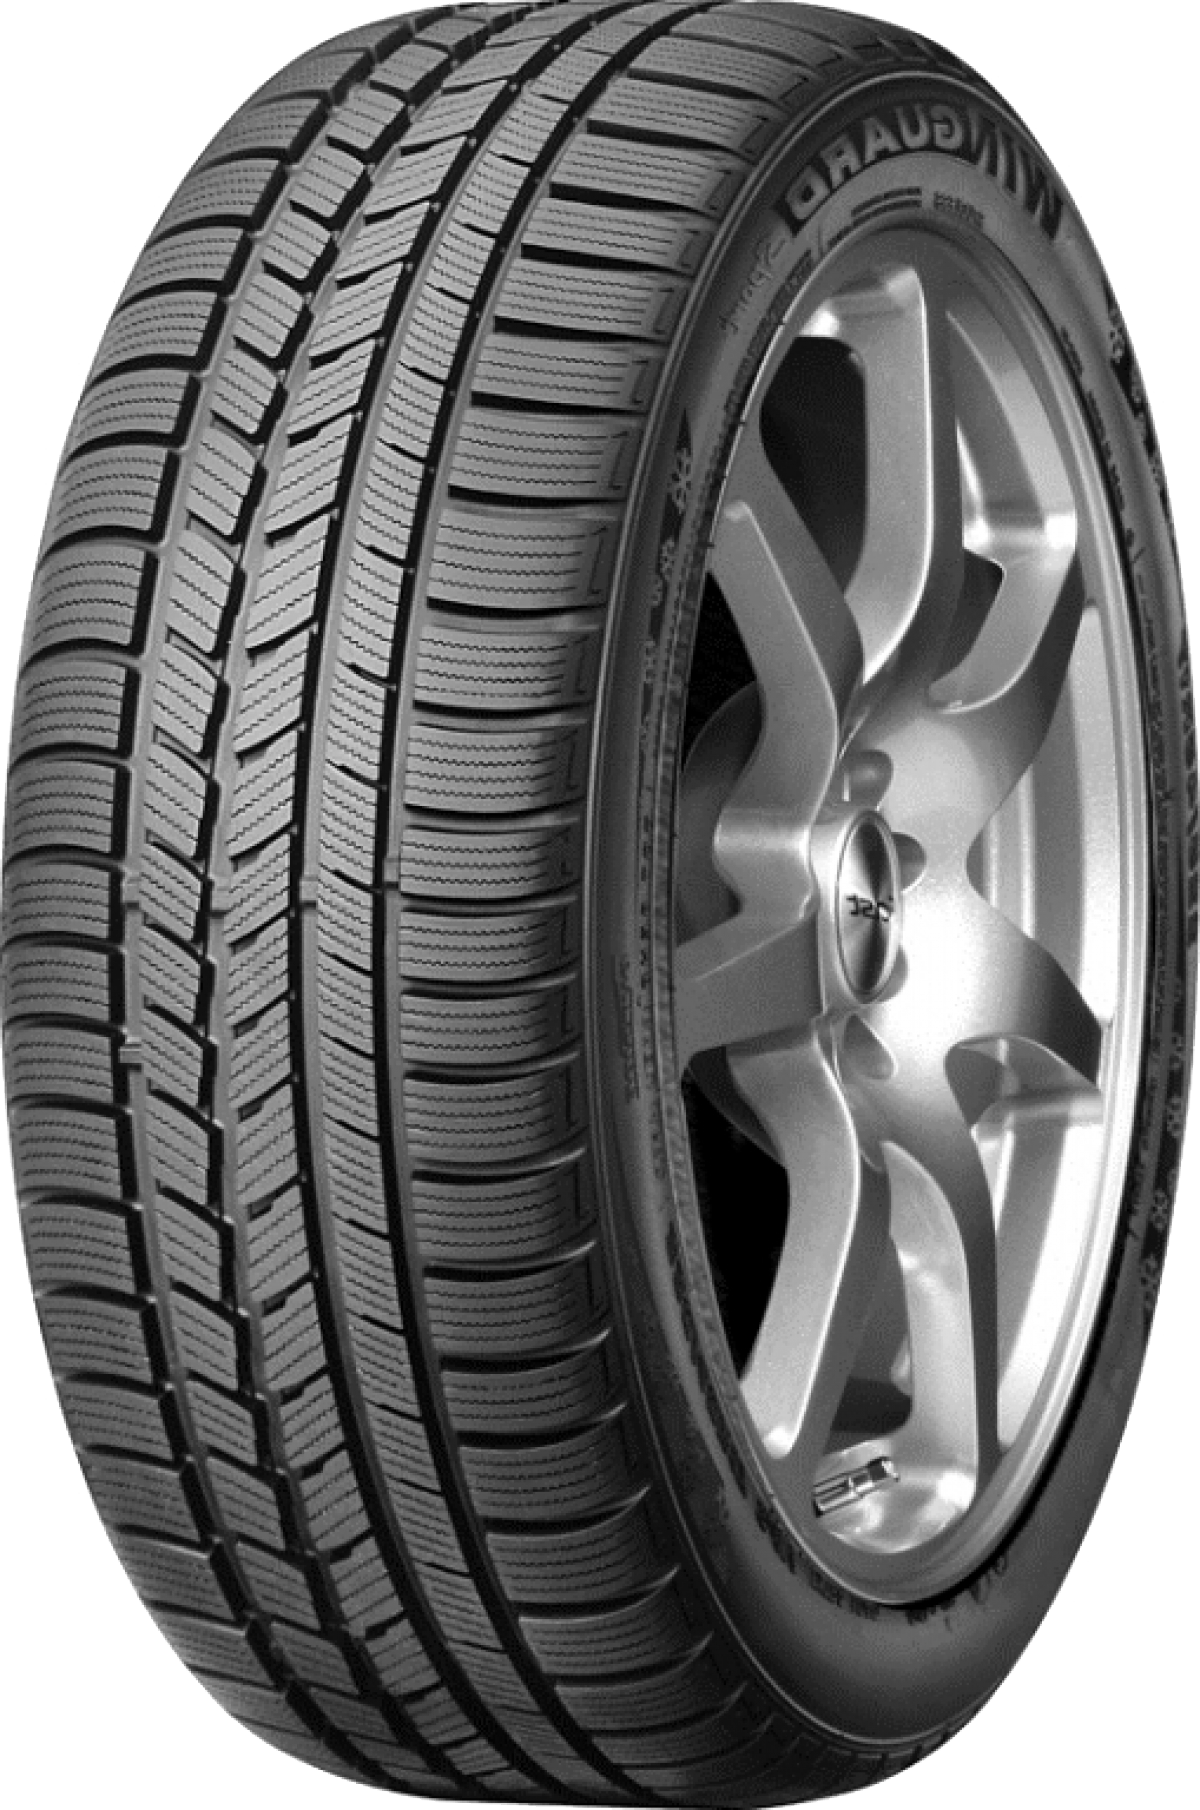 Зимняя шина Roadstone Winguard Sport 235/55 R17 103V